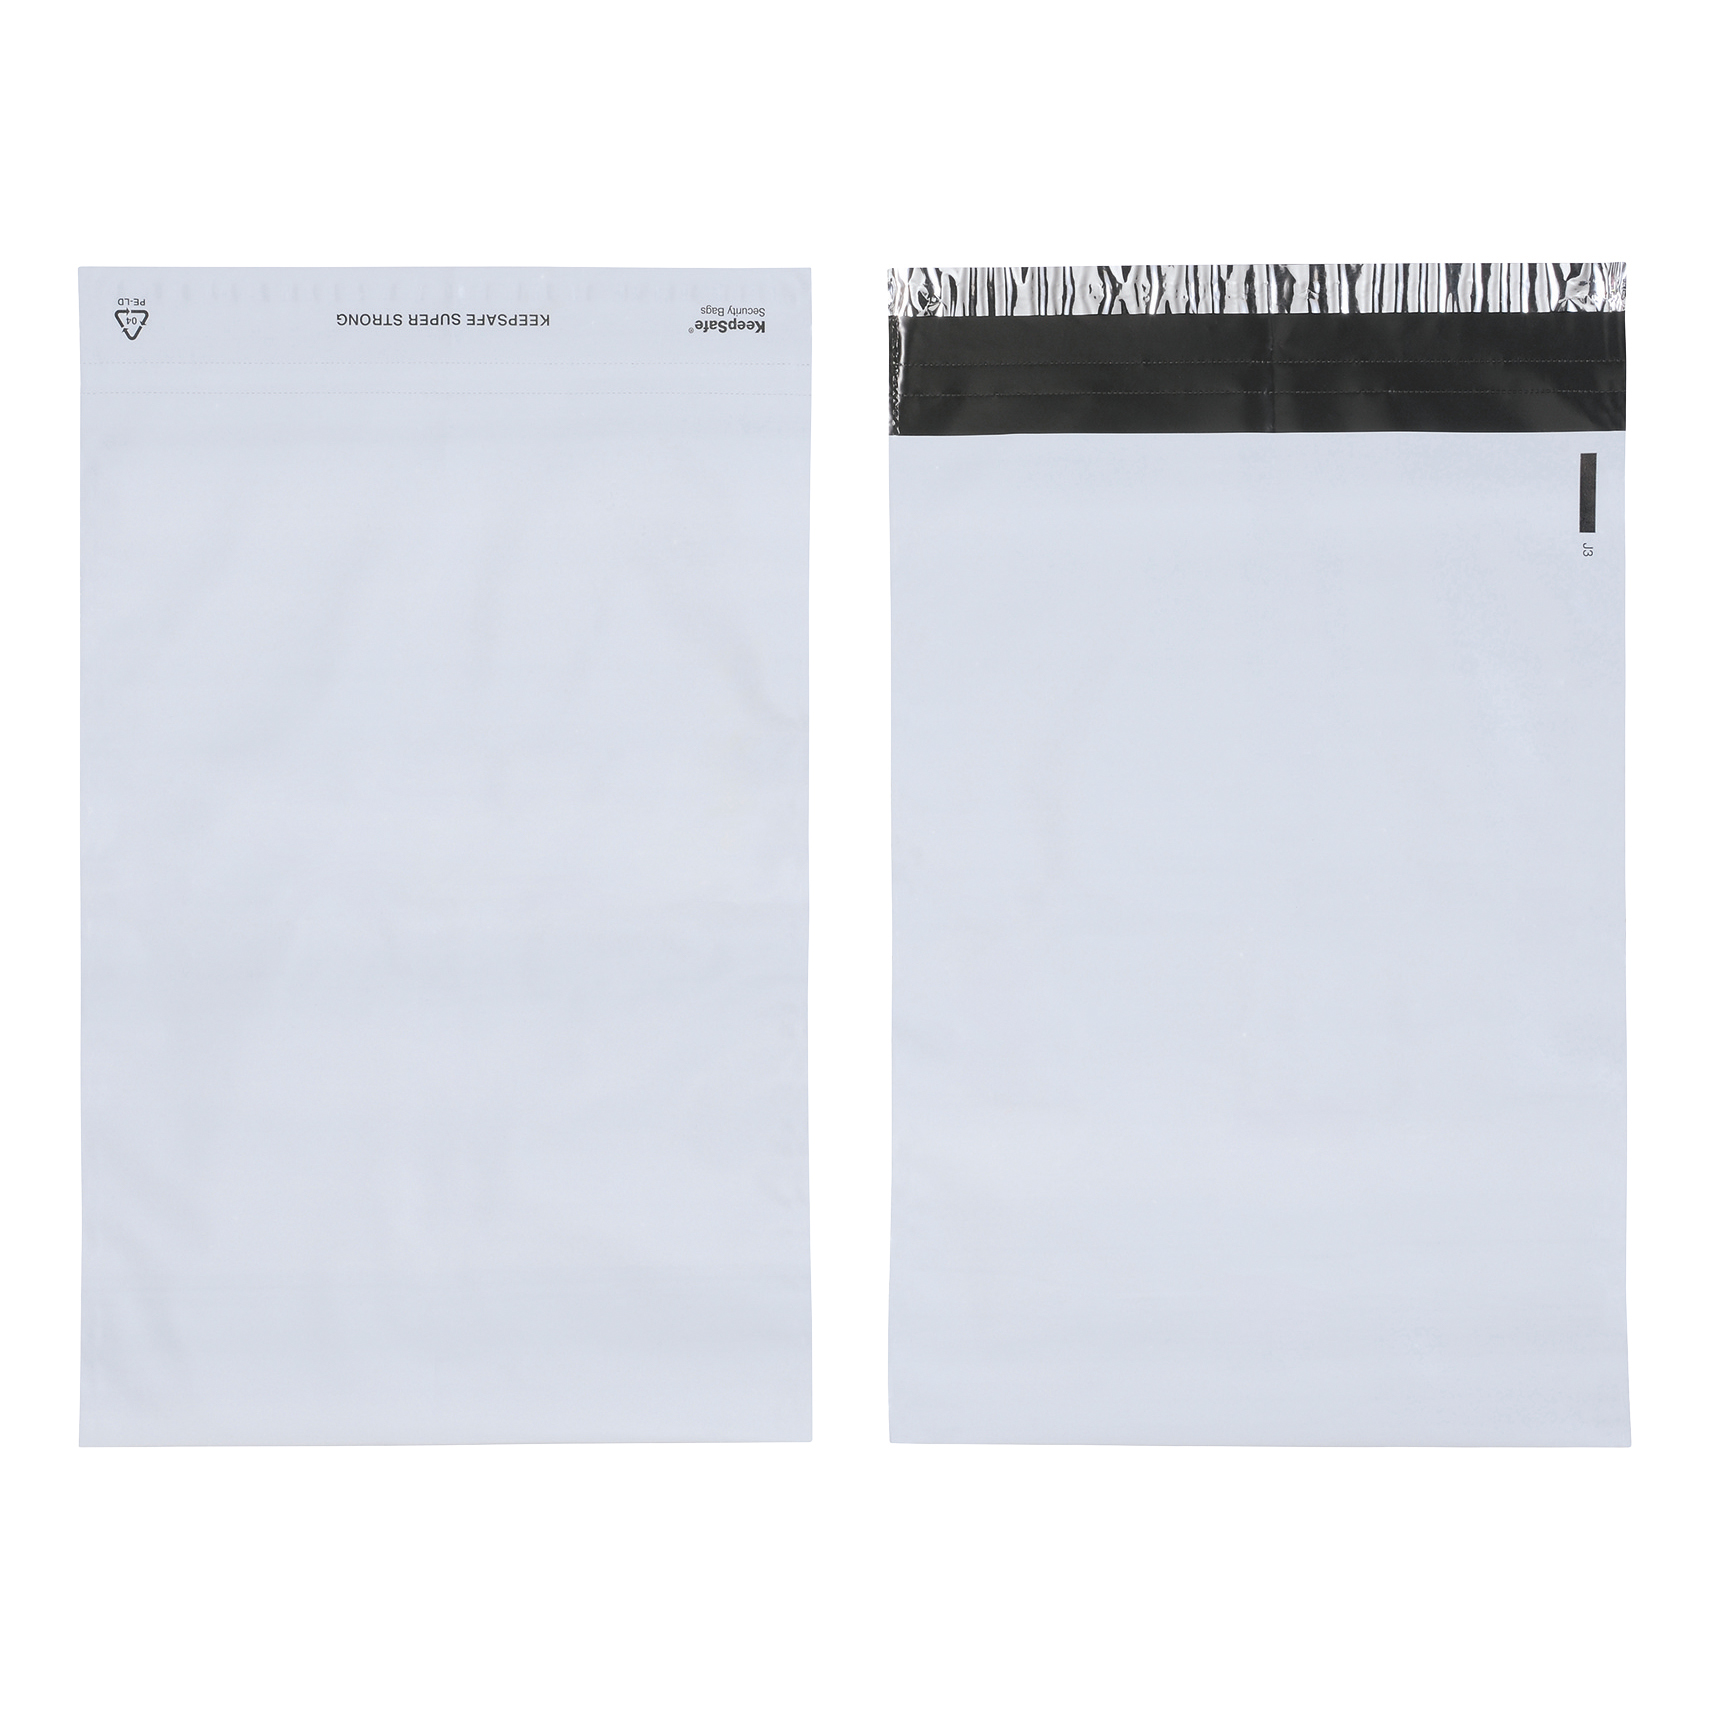 Keepsafe SuperStrong Envelope Polythene Opaque C4 W230xH320mm Peel & Seal Ref KSV-SS2 Pack 100